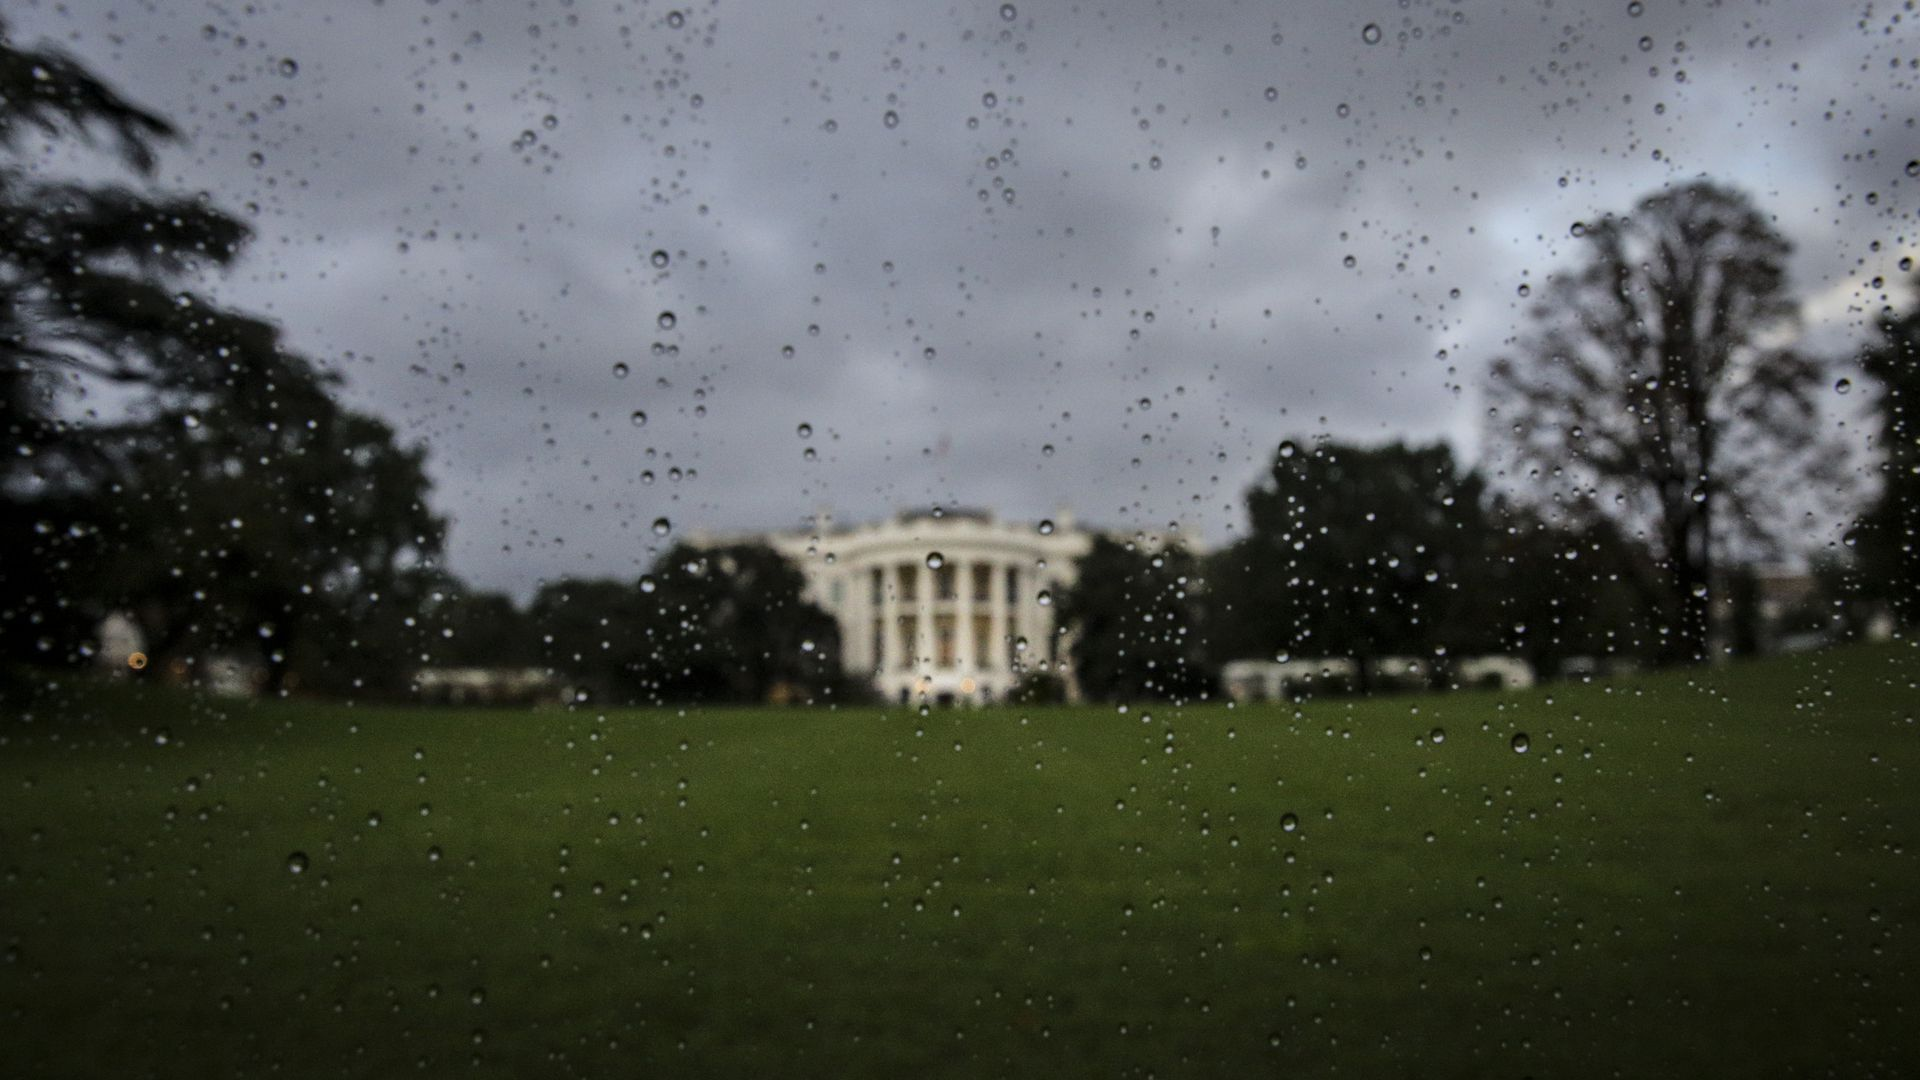 The South Lawn of the White House shown on a rainy day